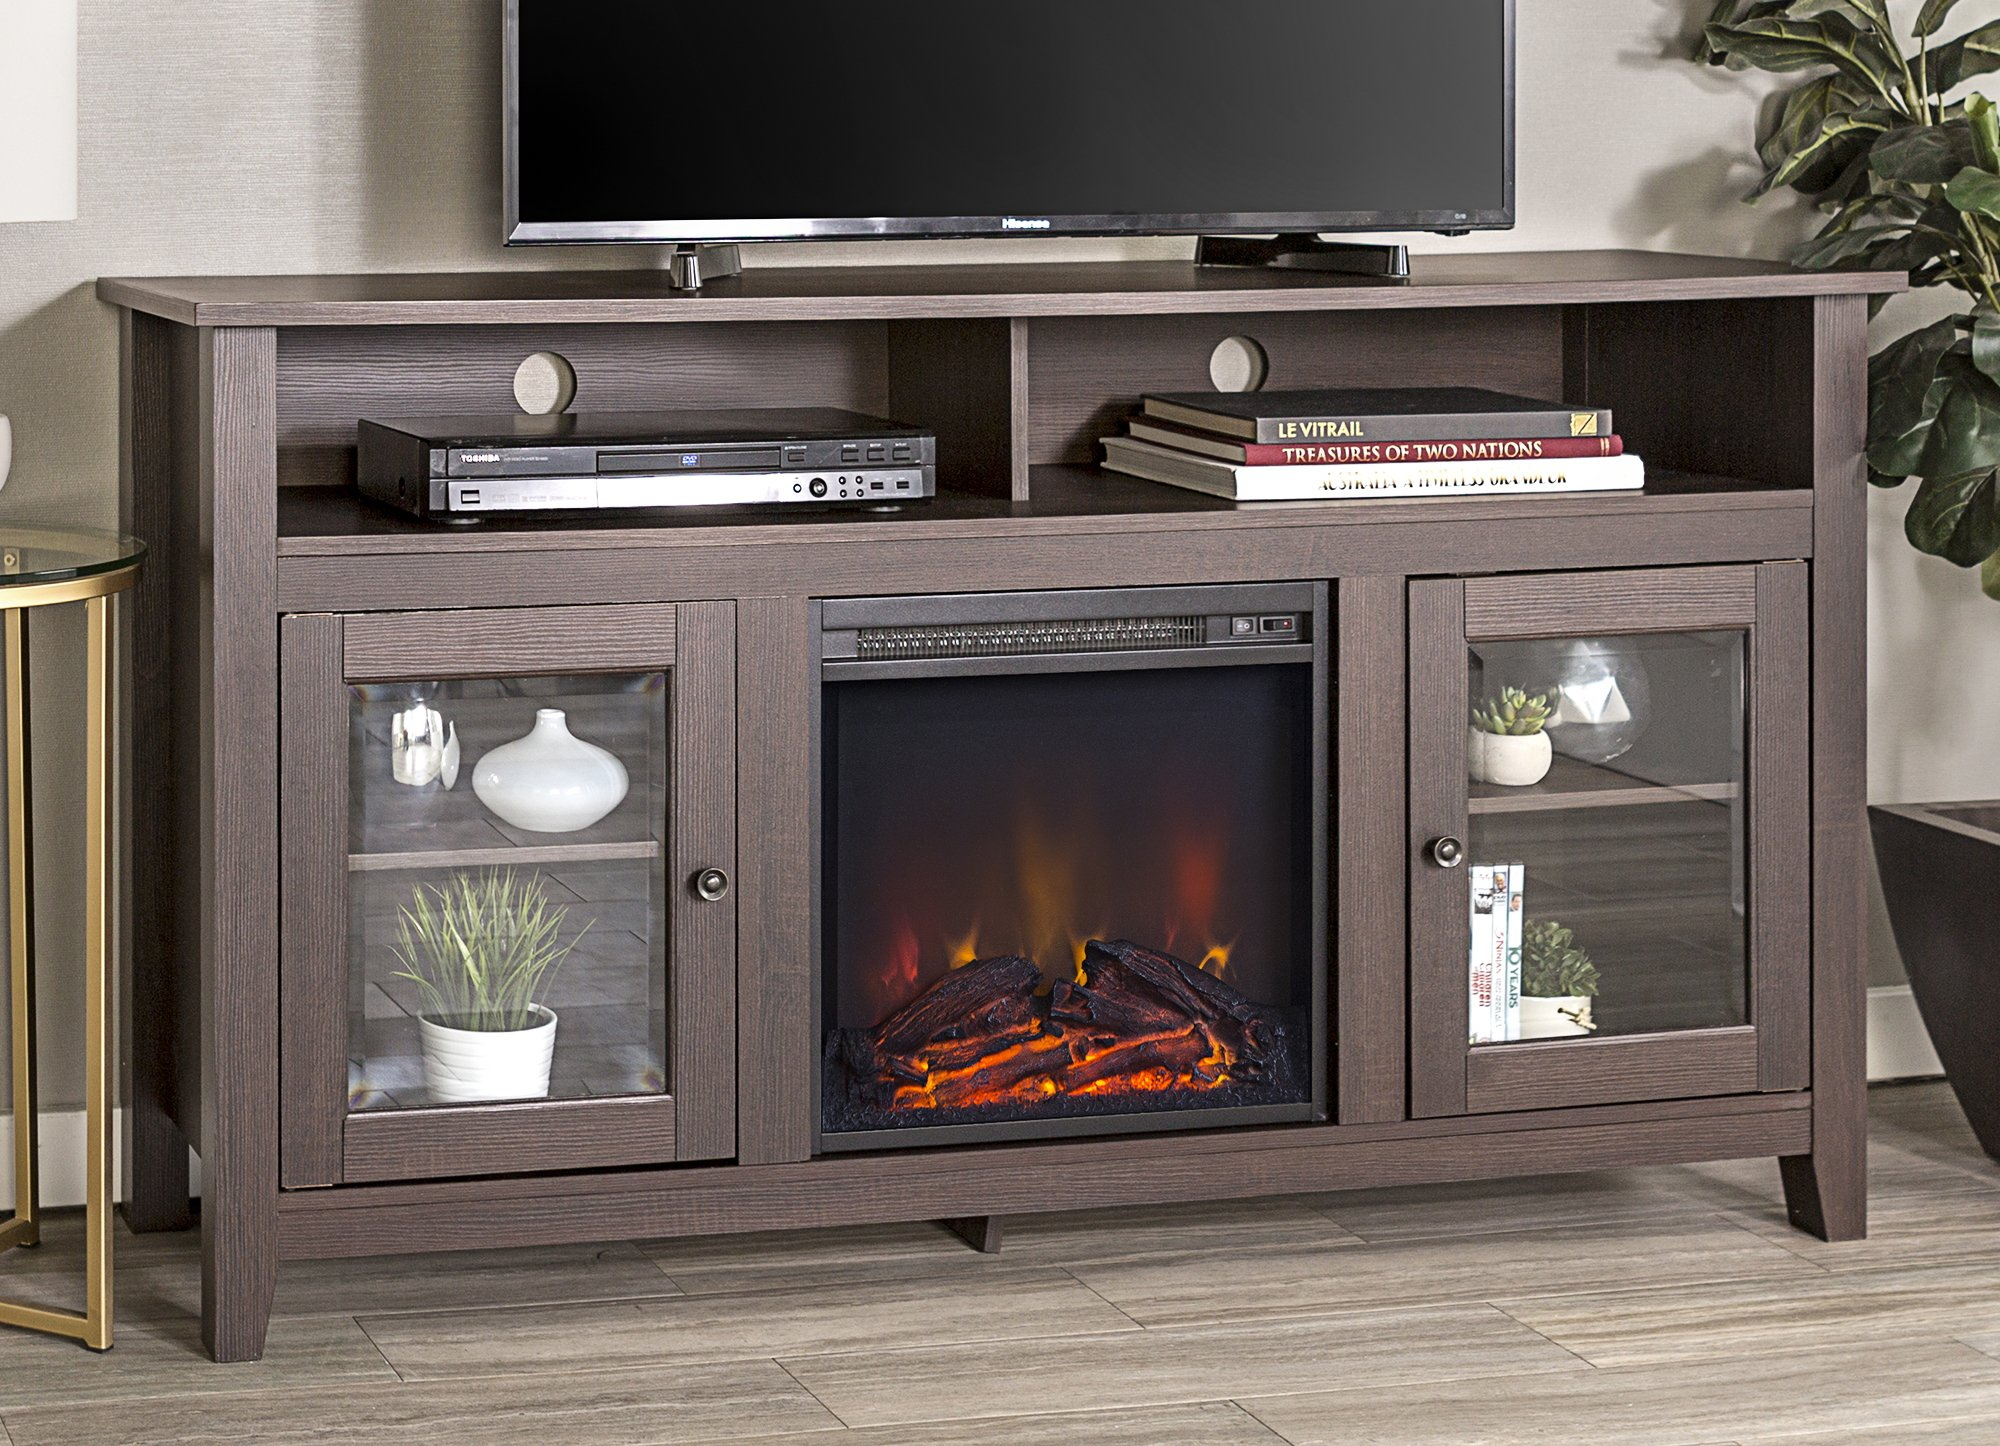 WE Furniture 58'' Wood Highboy Style TV Stand Fireplace Console, Espresso by WE Furniture